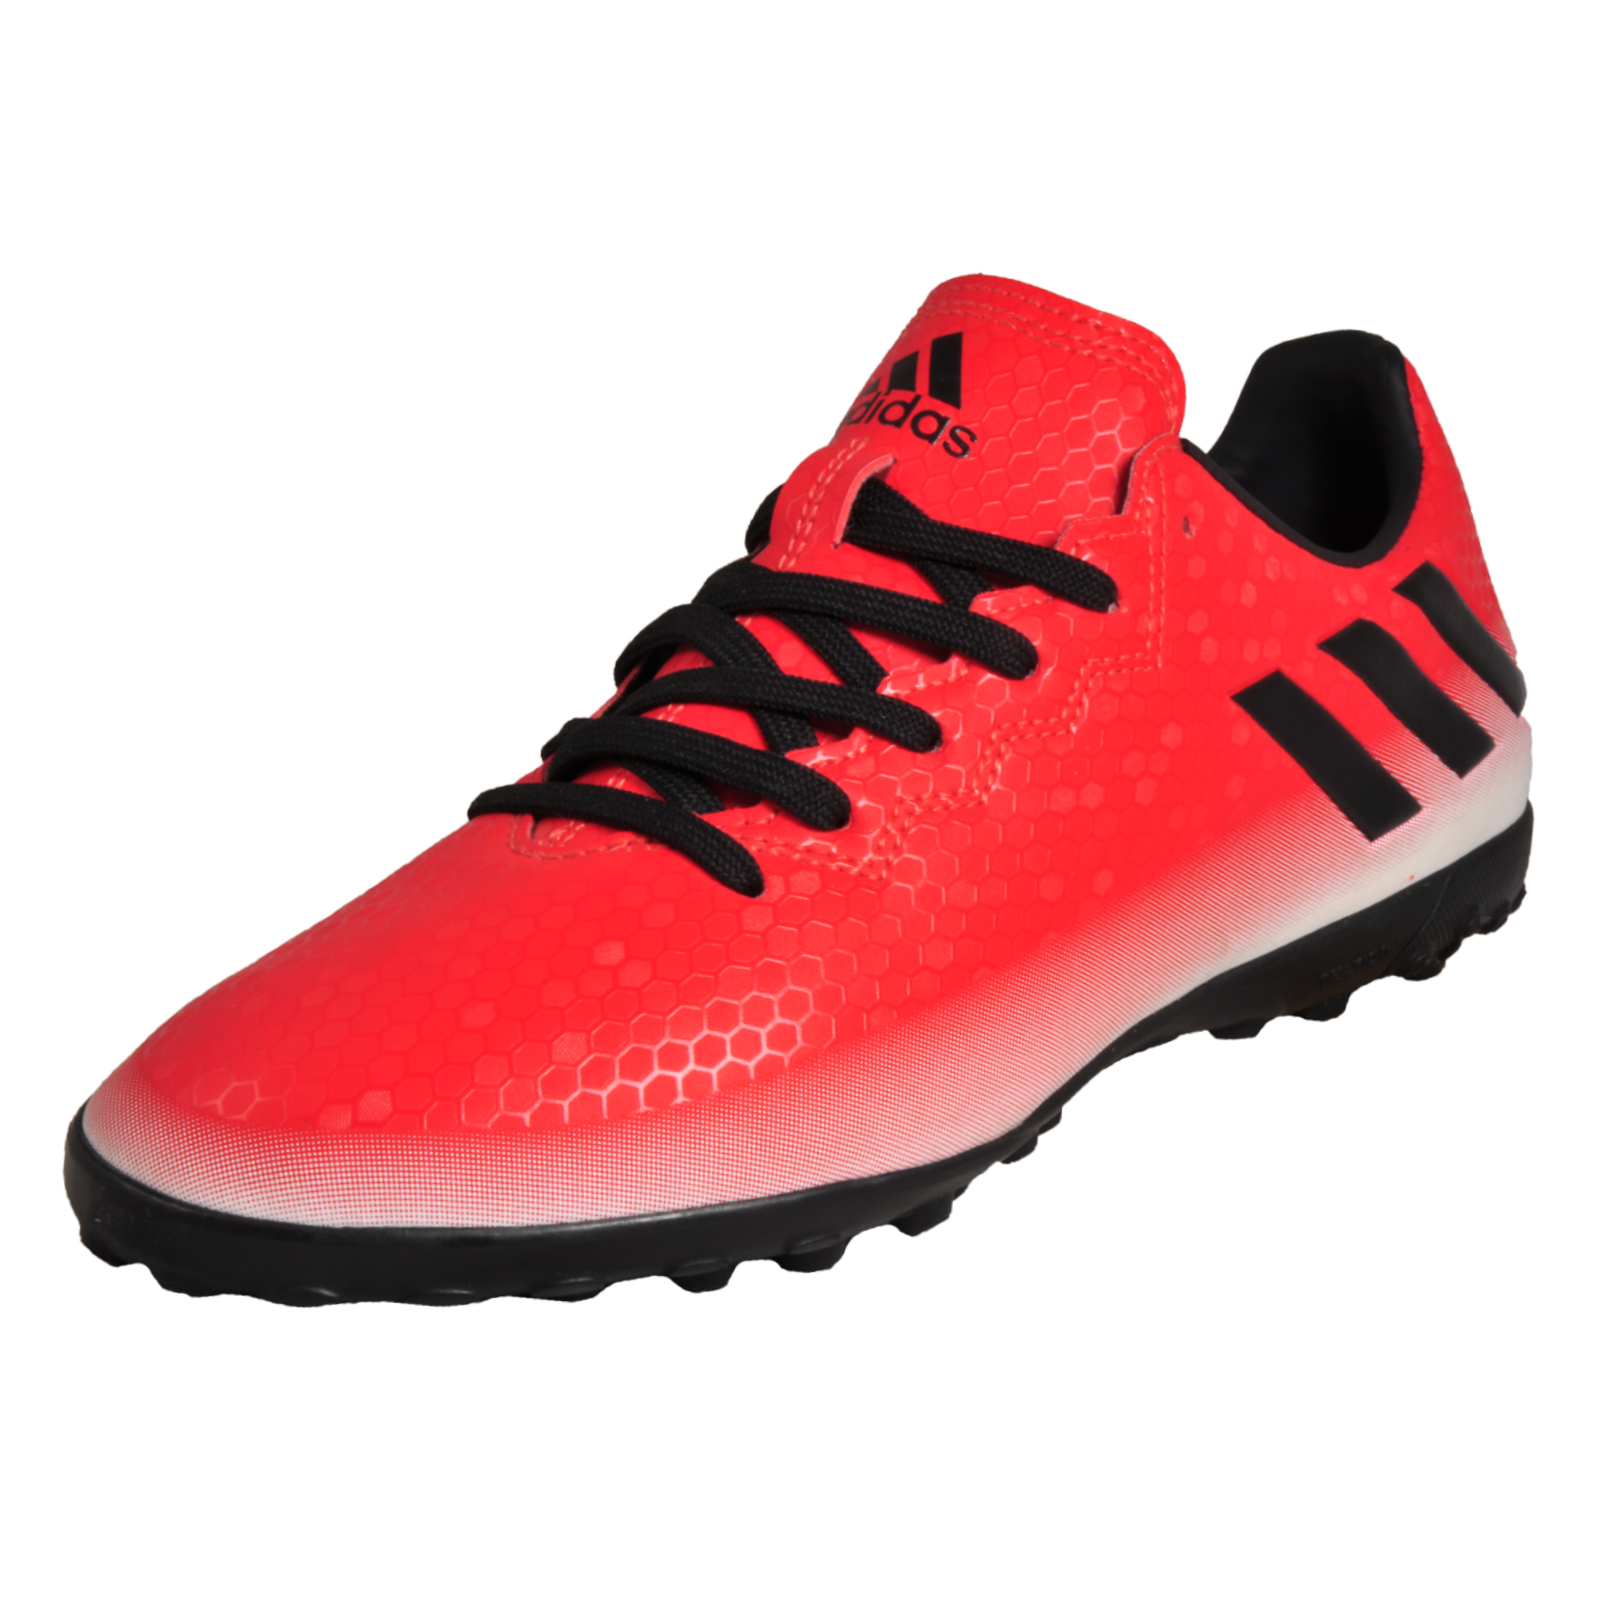 best sneakers 387a1 fa9ea Details about Adidas Messi 16.4 TF Mens Football Astro Turf Indoor Trainers  Red